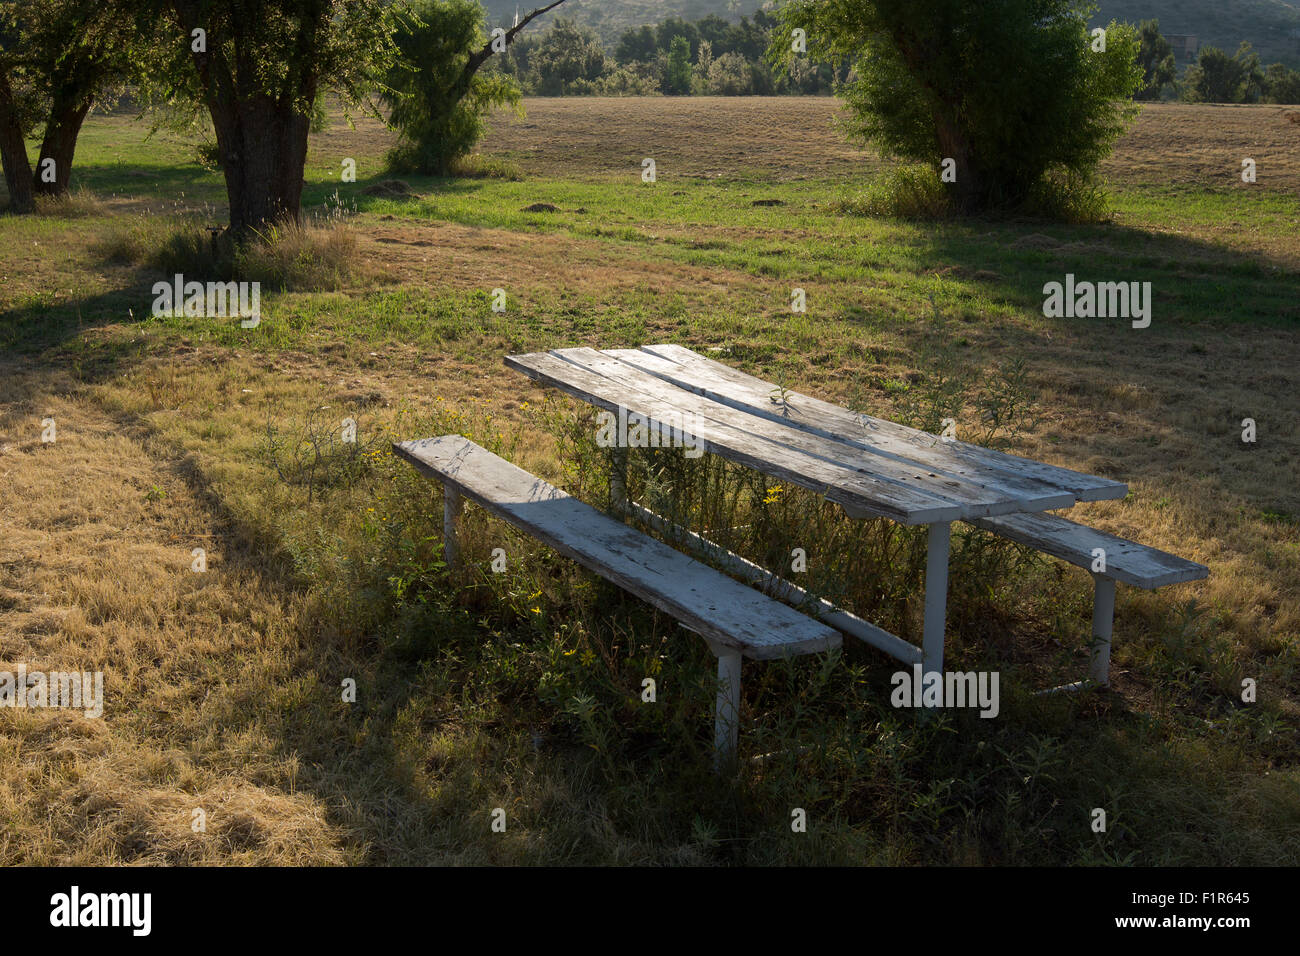 Neglected bench in a public park the city of Alpine, West Texas - Stock Image